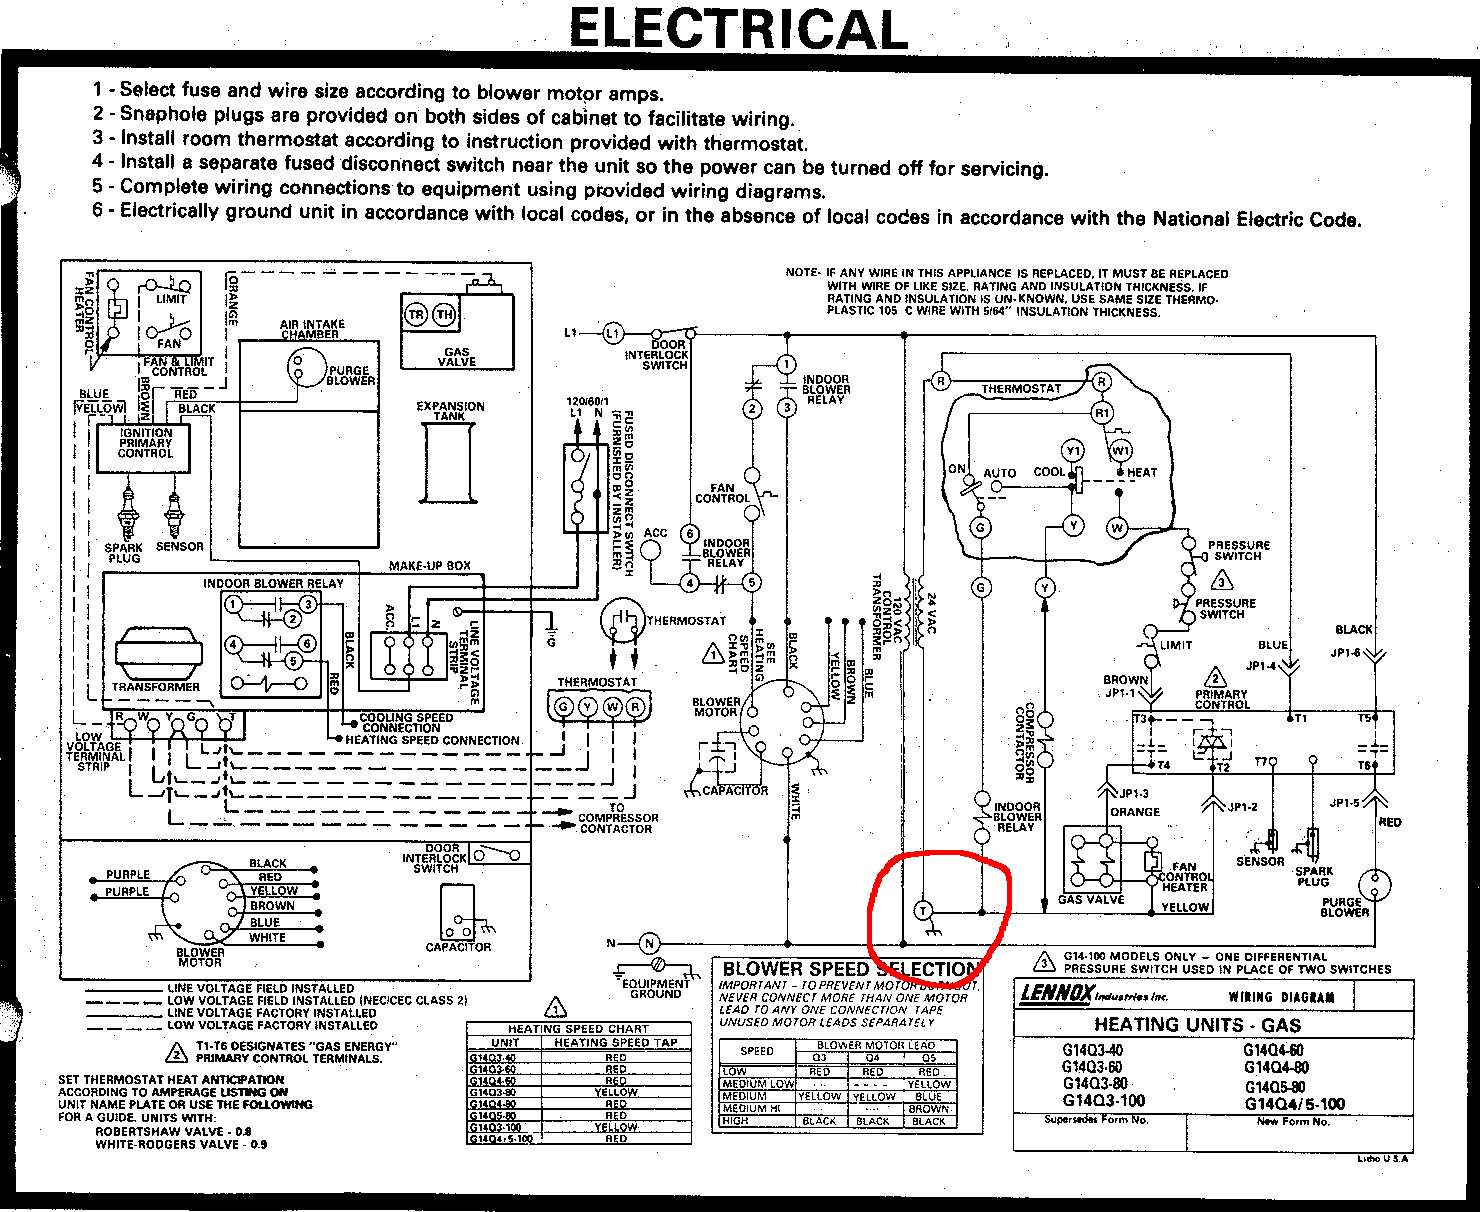 Can I Use The T Terminal In My Furnace As The C For A Wifi - Honeywell Wifi Thermostat Wiring Diagram